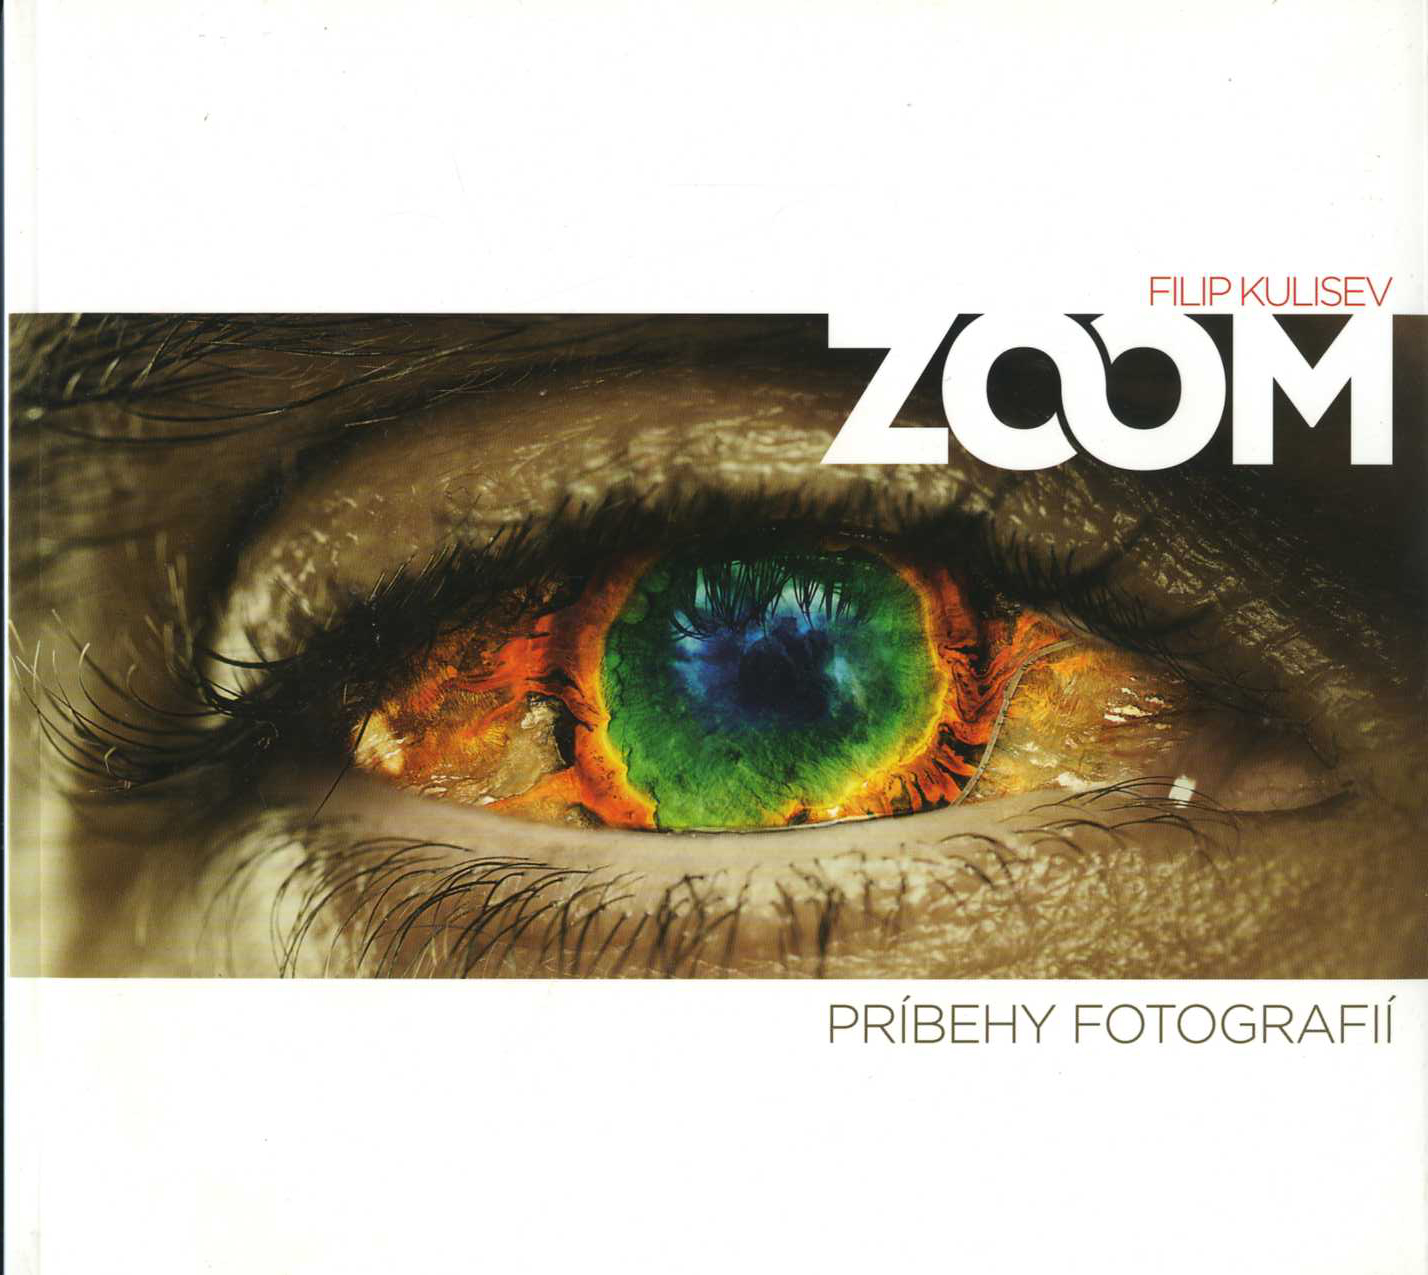 ZOOM (Filip Kulisev)